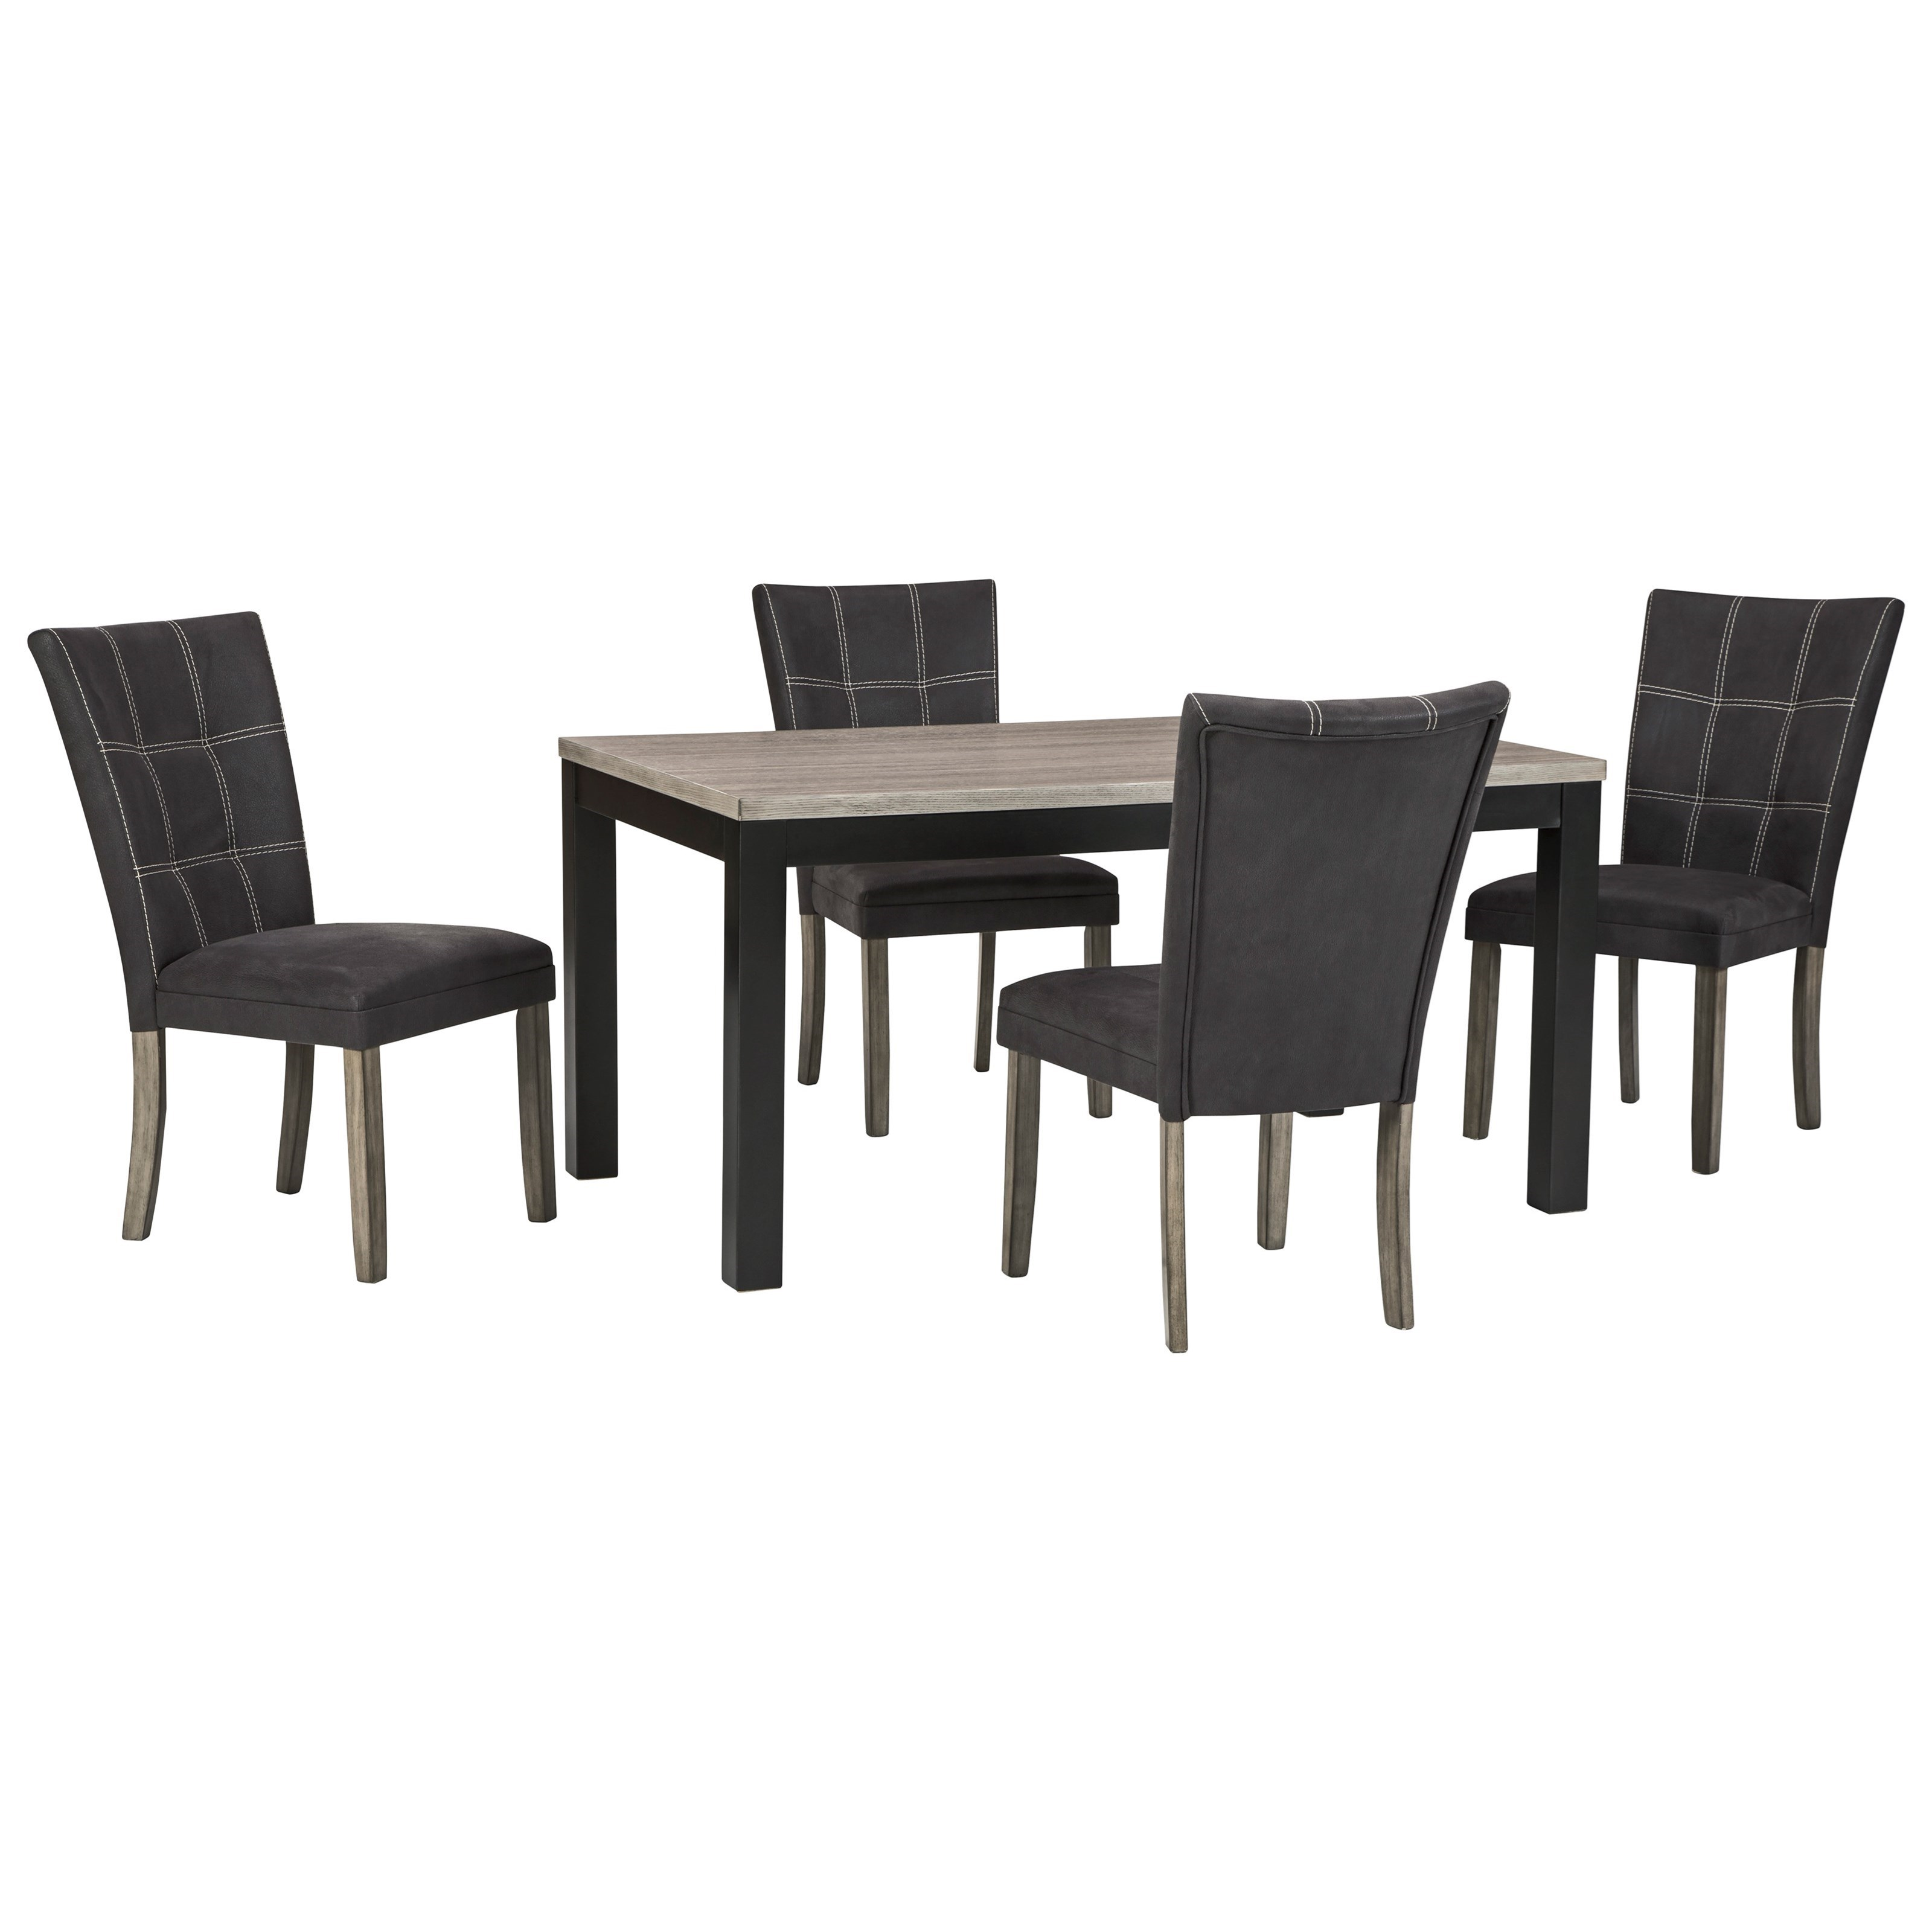 Dontally 5-Piece Rectangular Dining Table Set by Benchcraft at Catalog Outlet